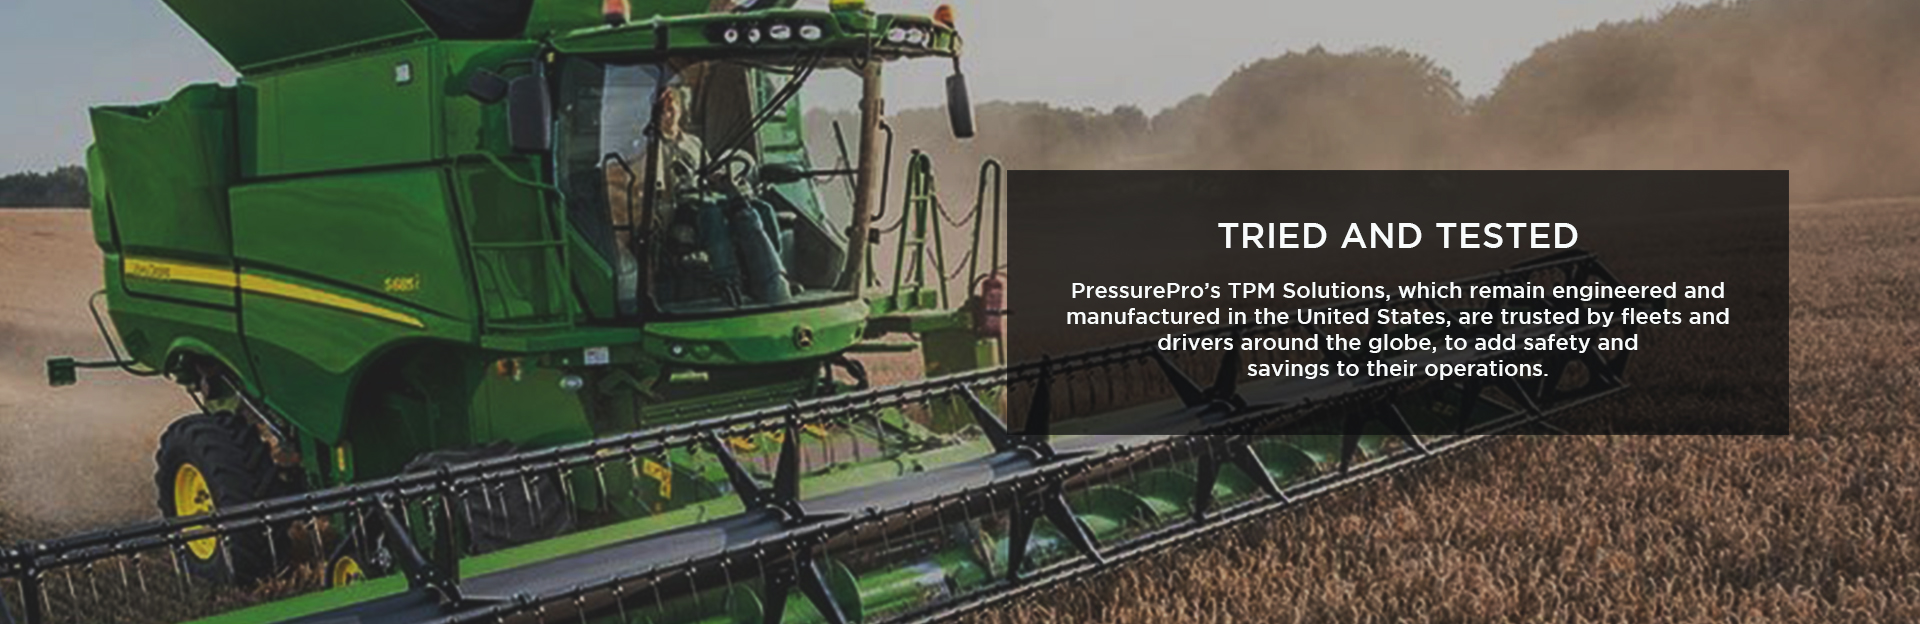 TPMS for Agriculture Equipment